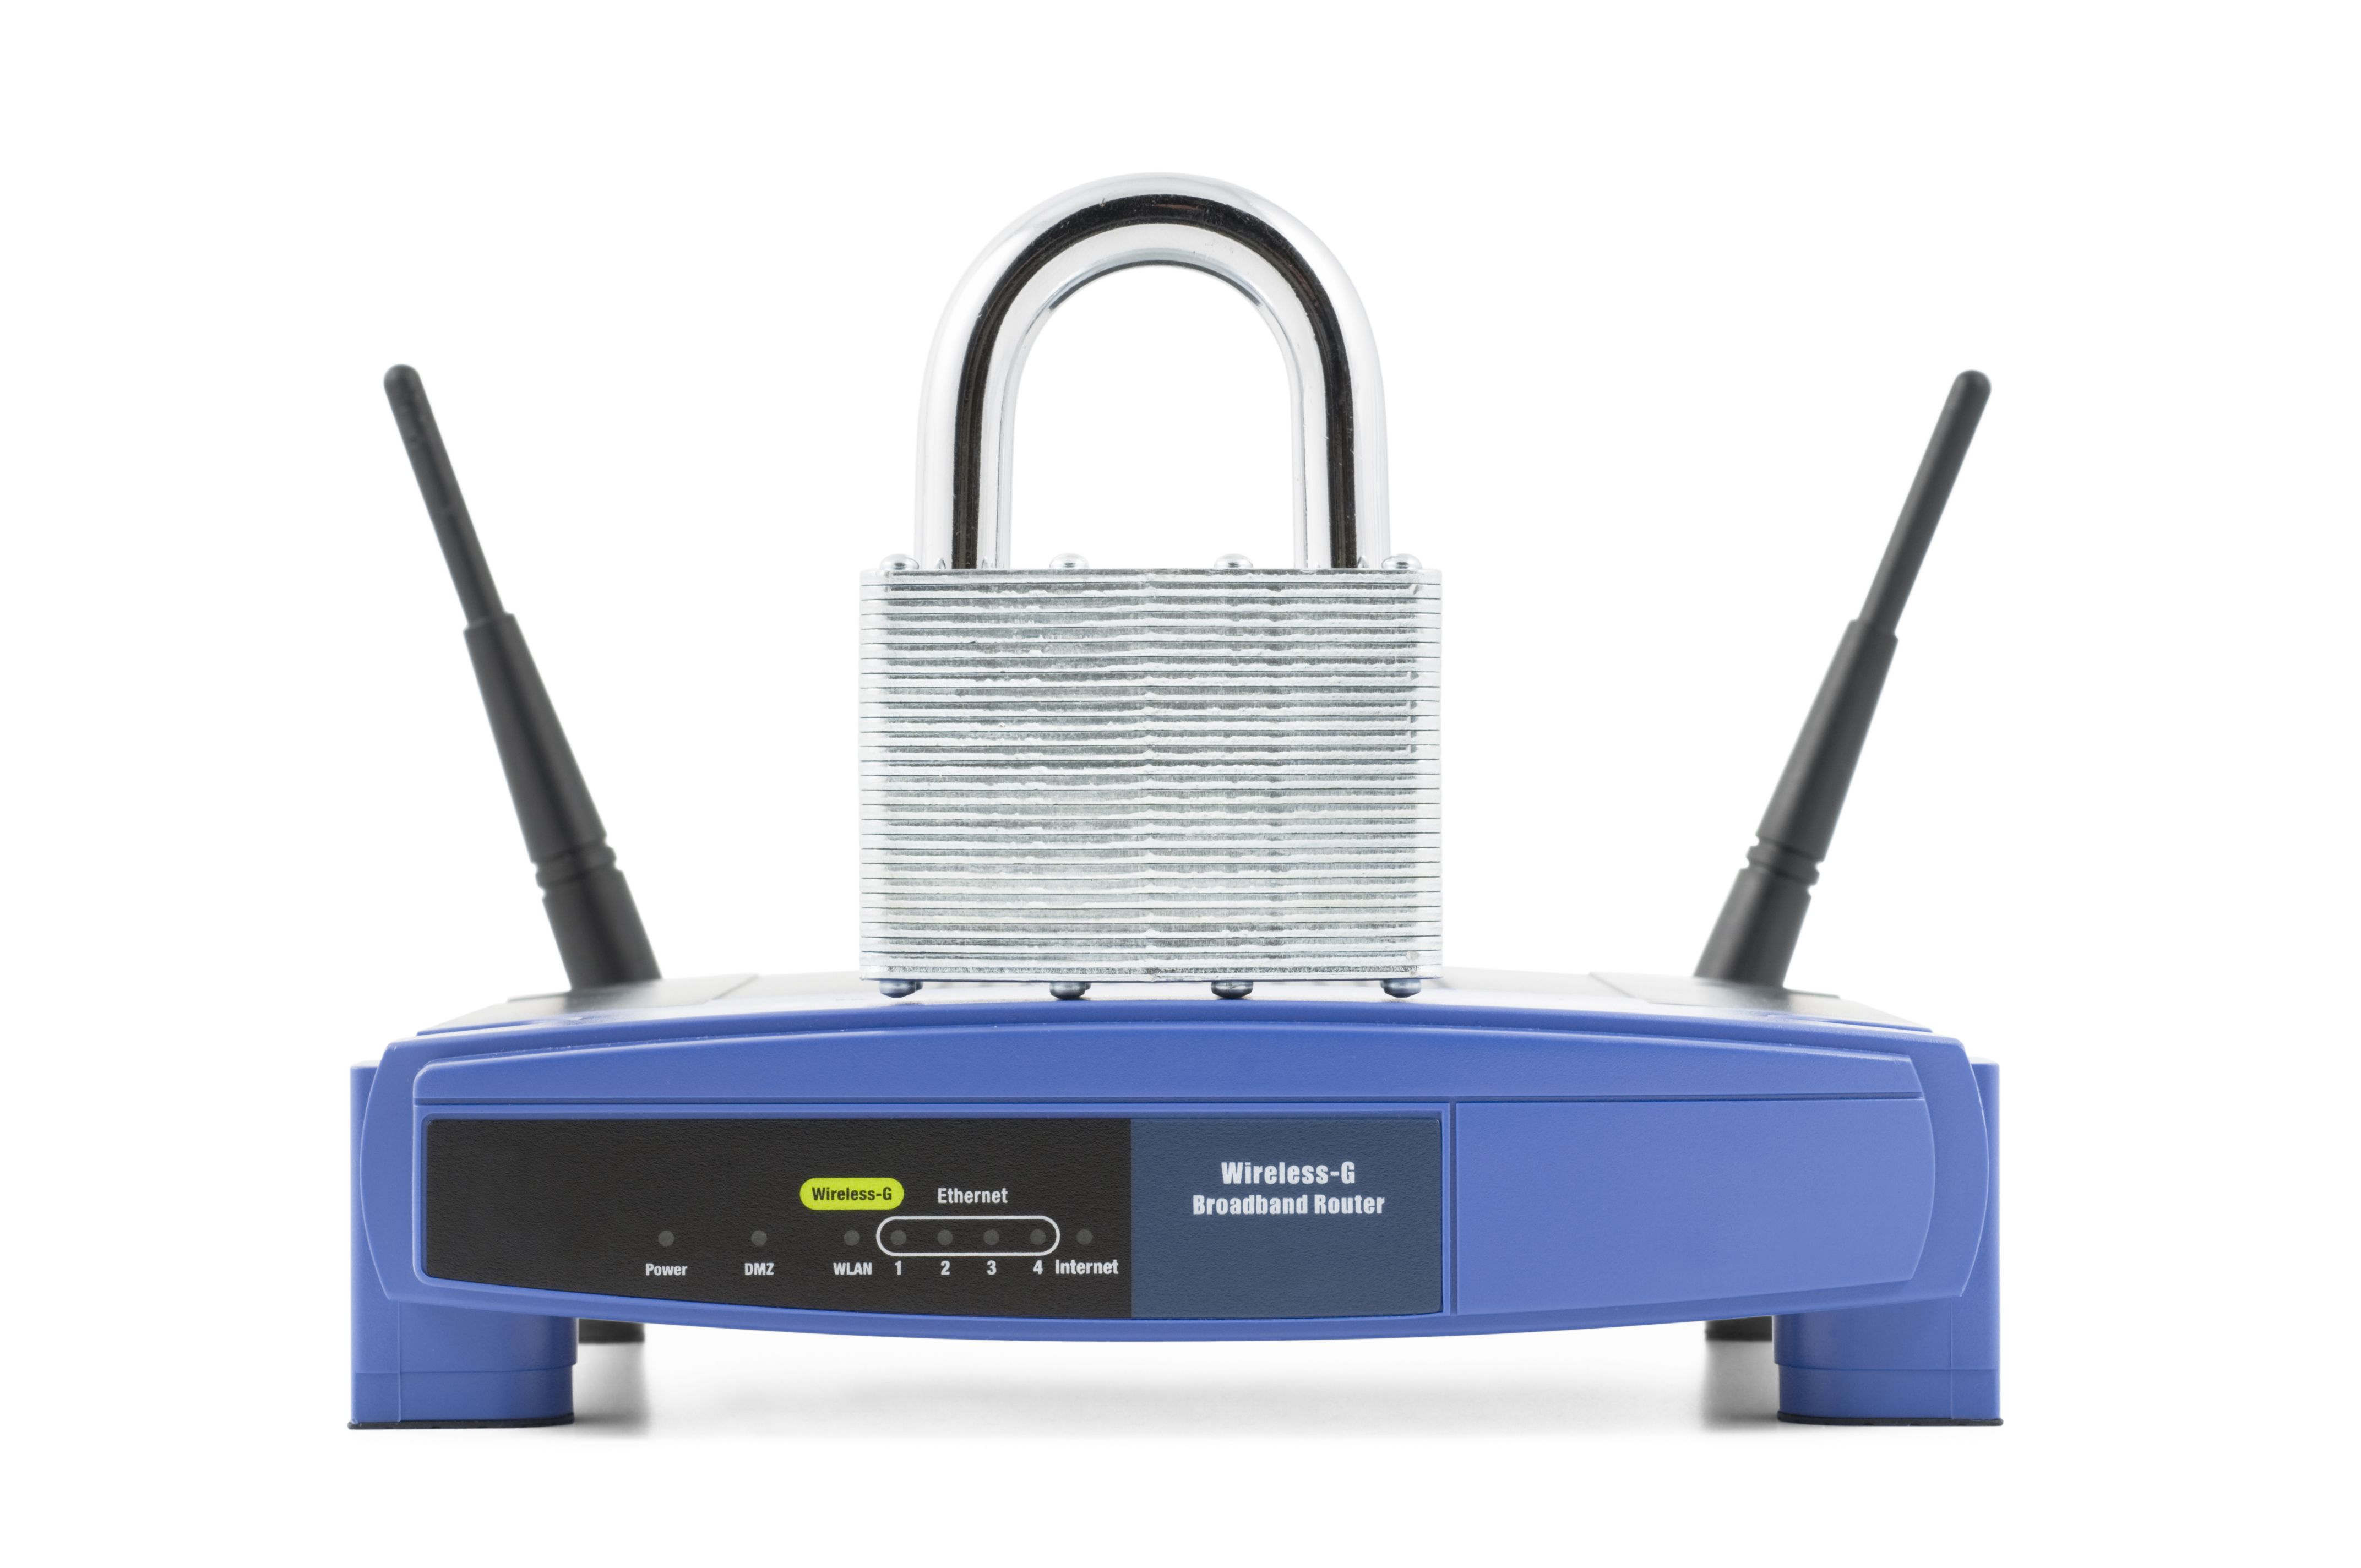 Hacking Network Printers Mostly HP JetDirects  but a little  Research paper  on hacking wireless network